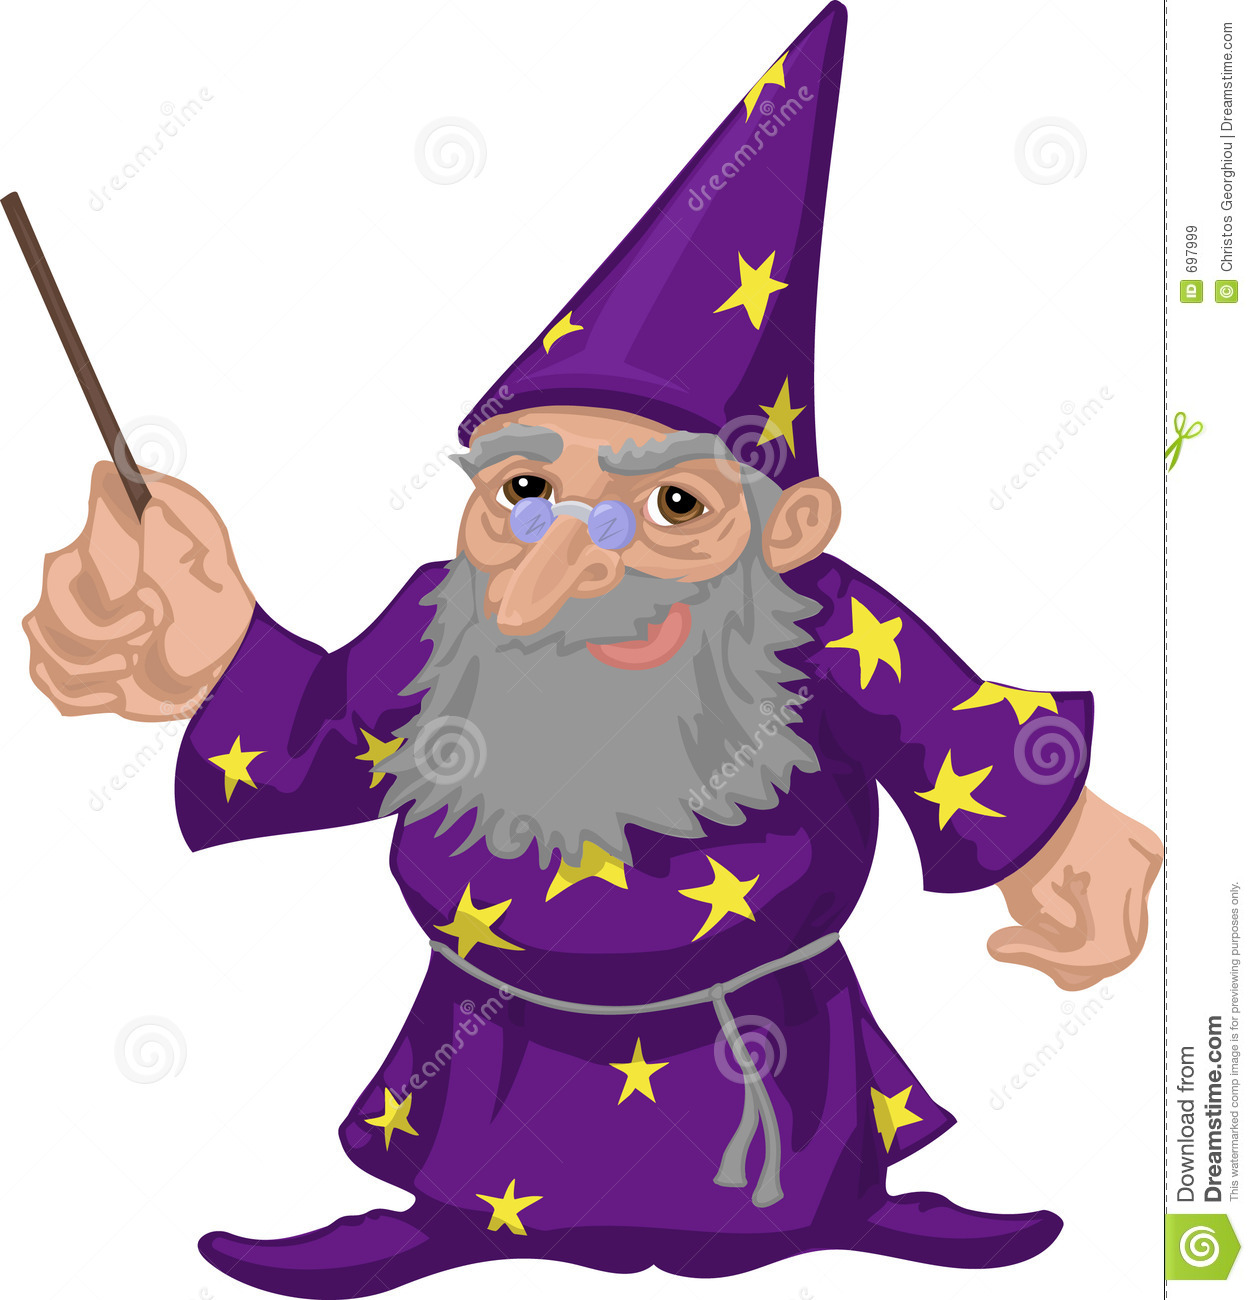 Wizard royalty free stock images image 697999